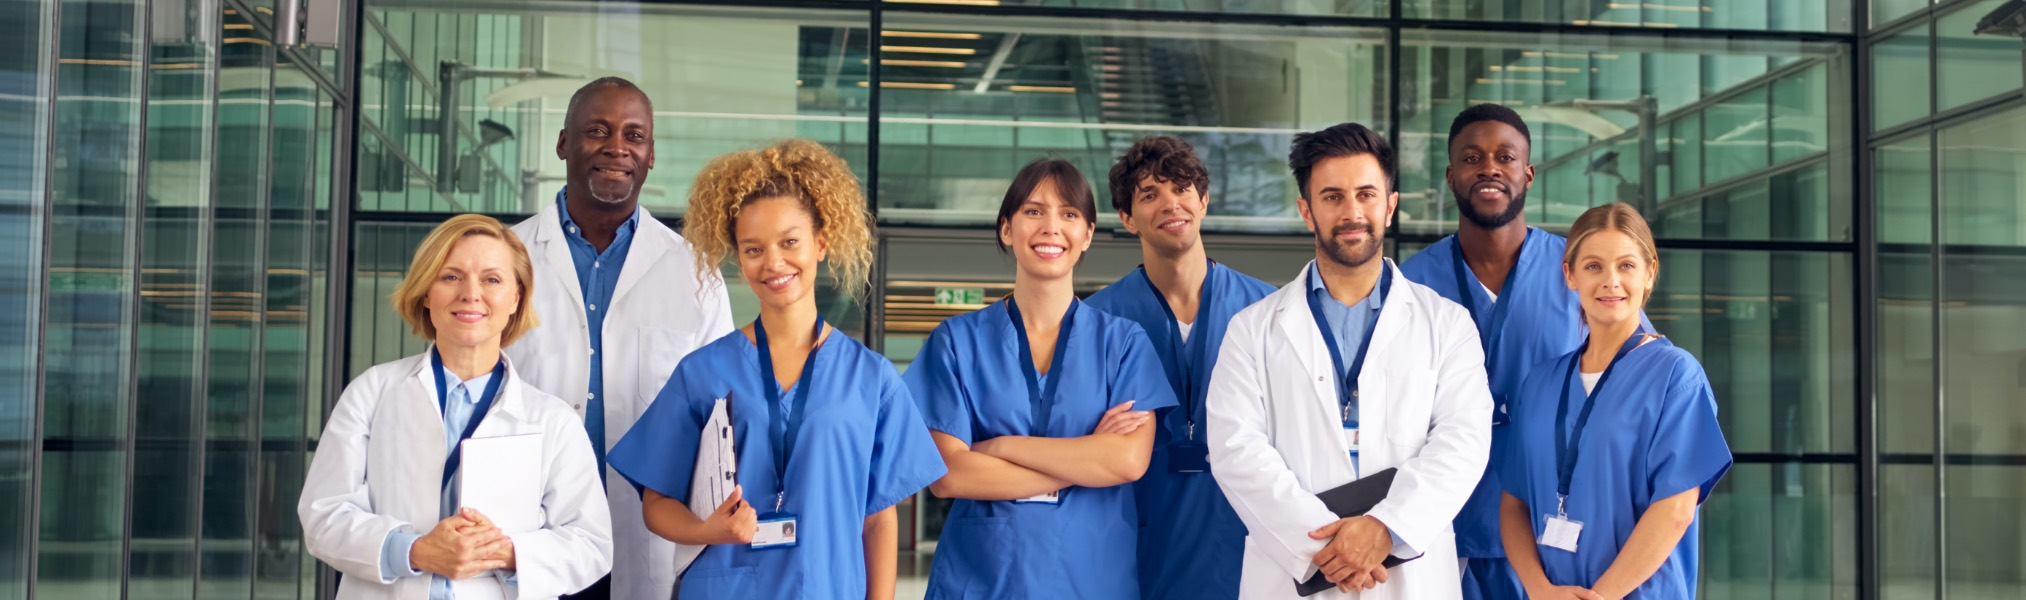 A group of multi-cultural medical professionals